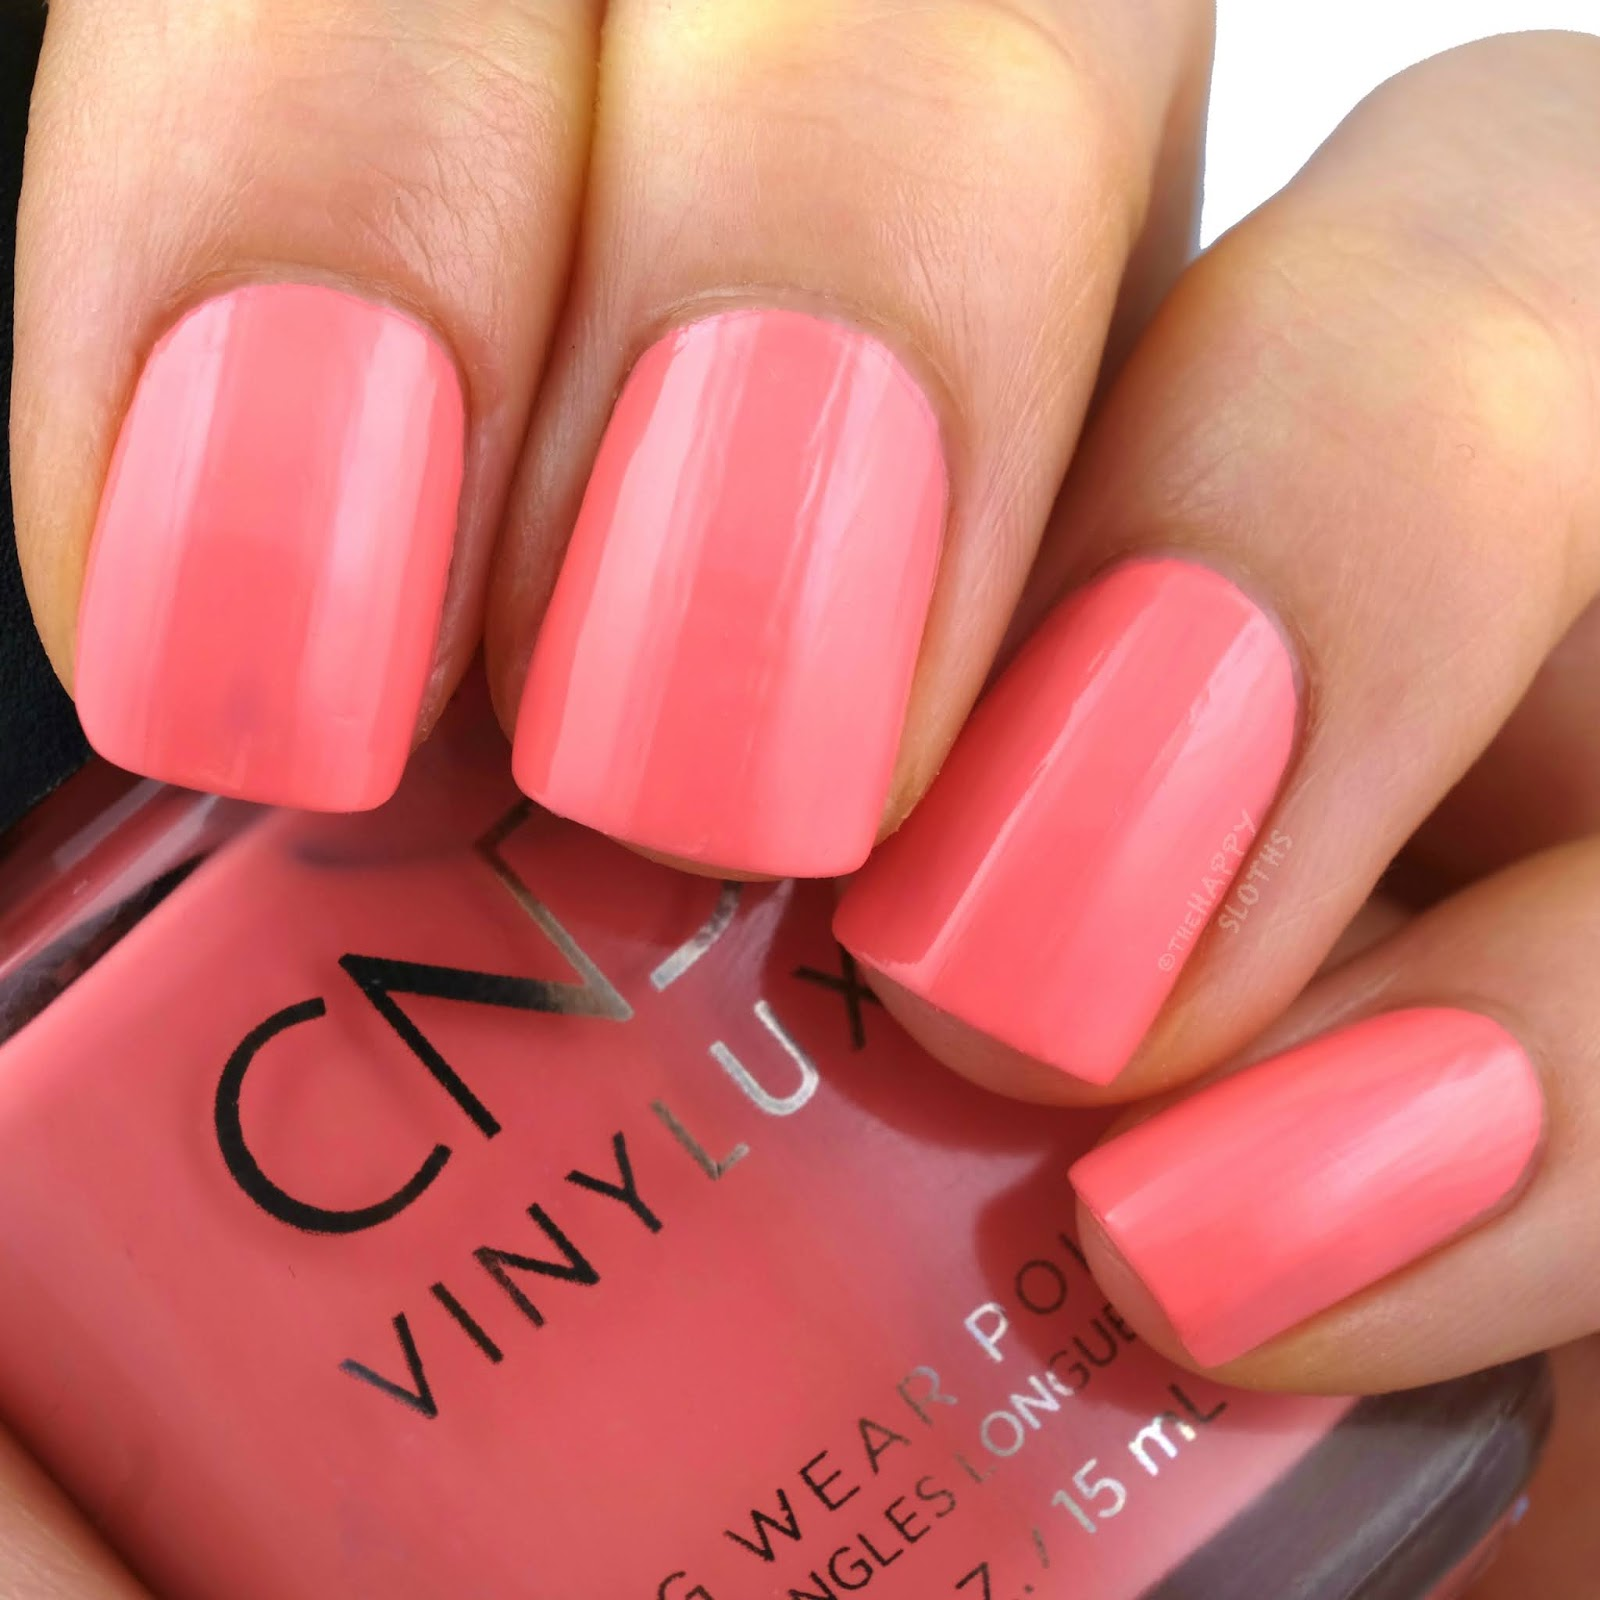 CND | Summer 2020 Nauti Nautical Collection | Catch of the Day: Review and Swatches